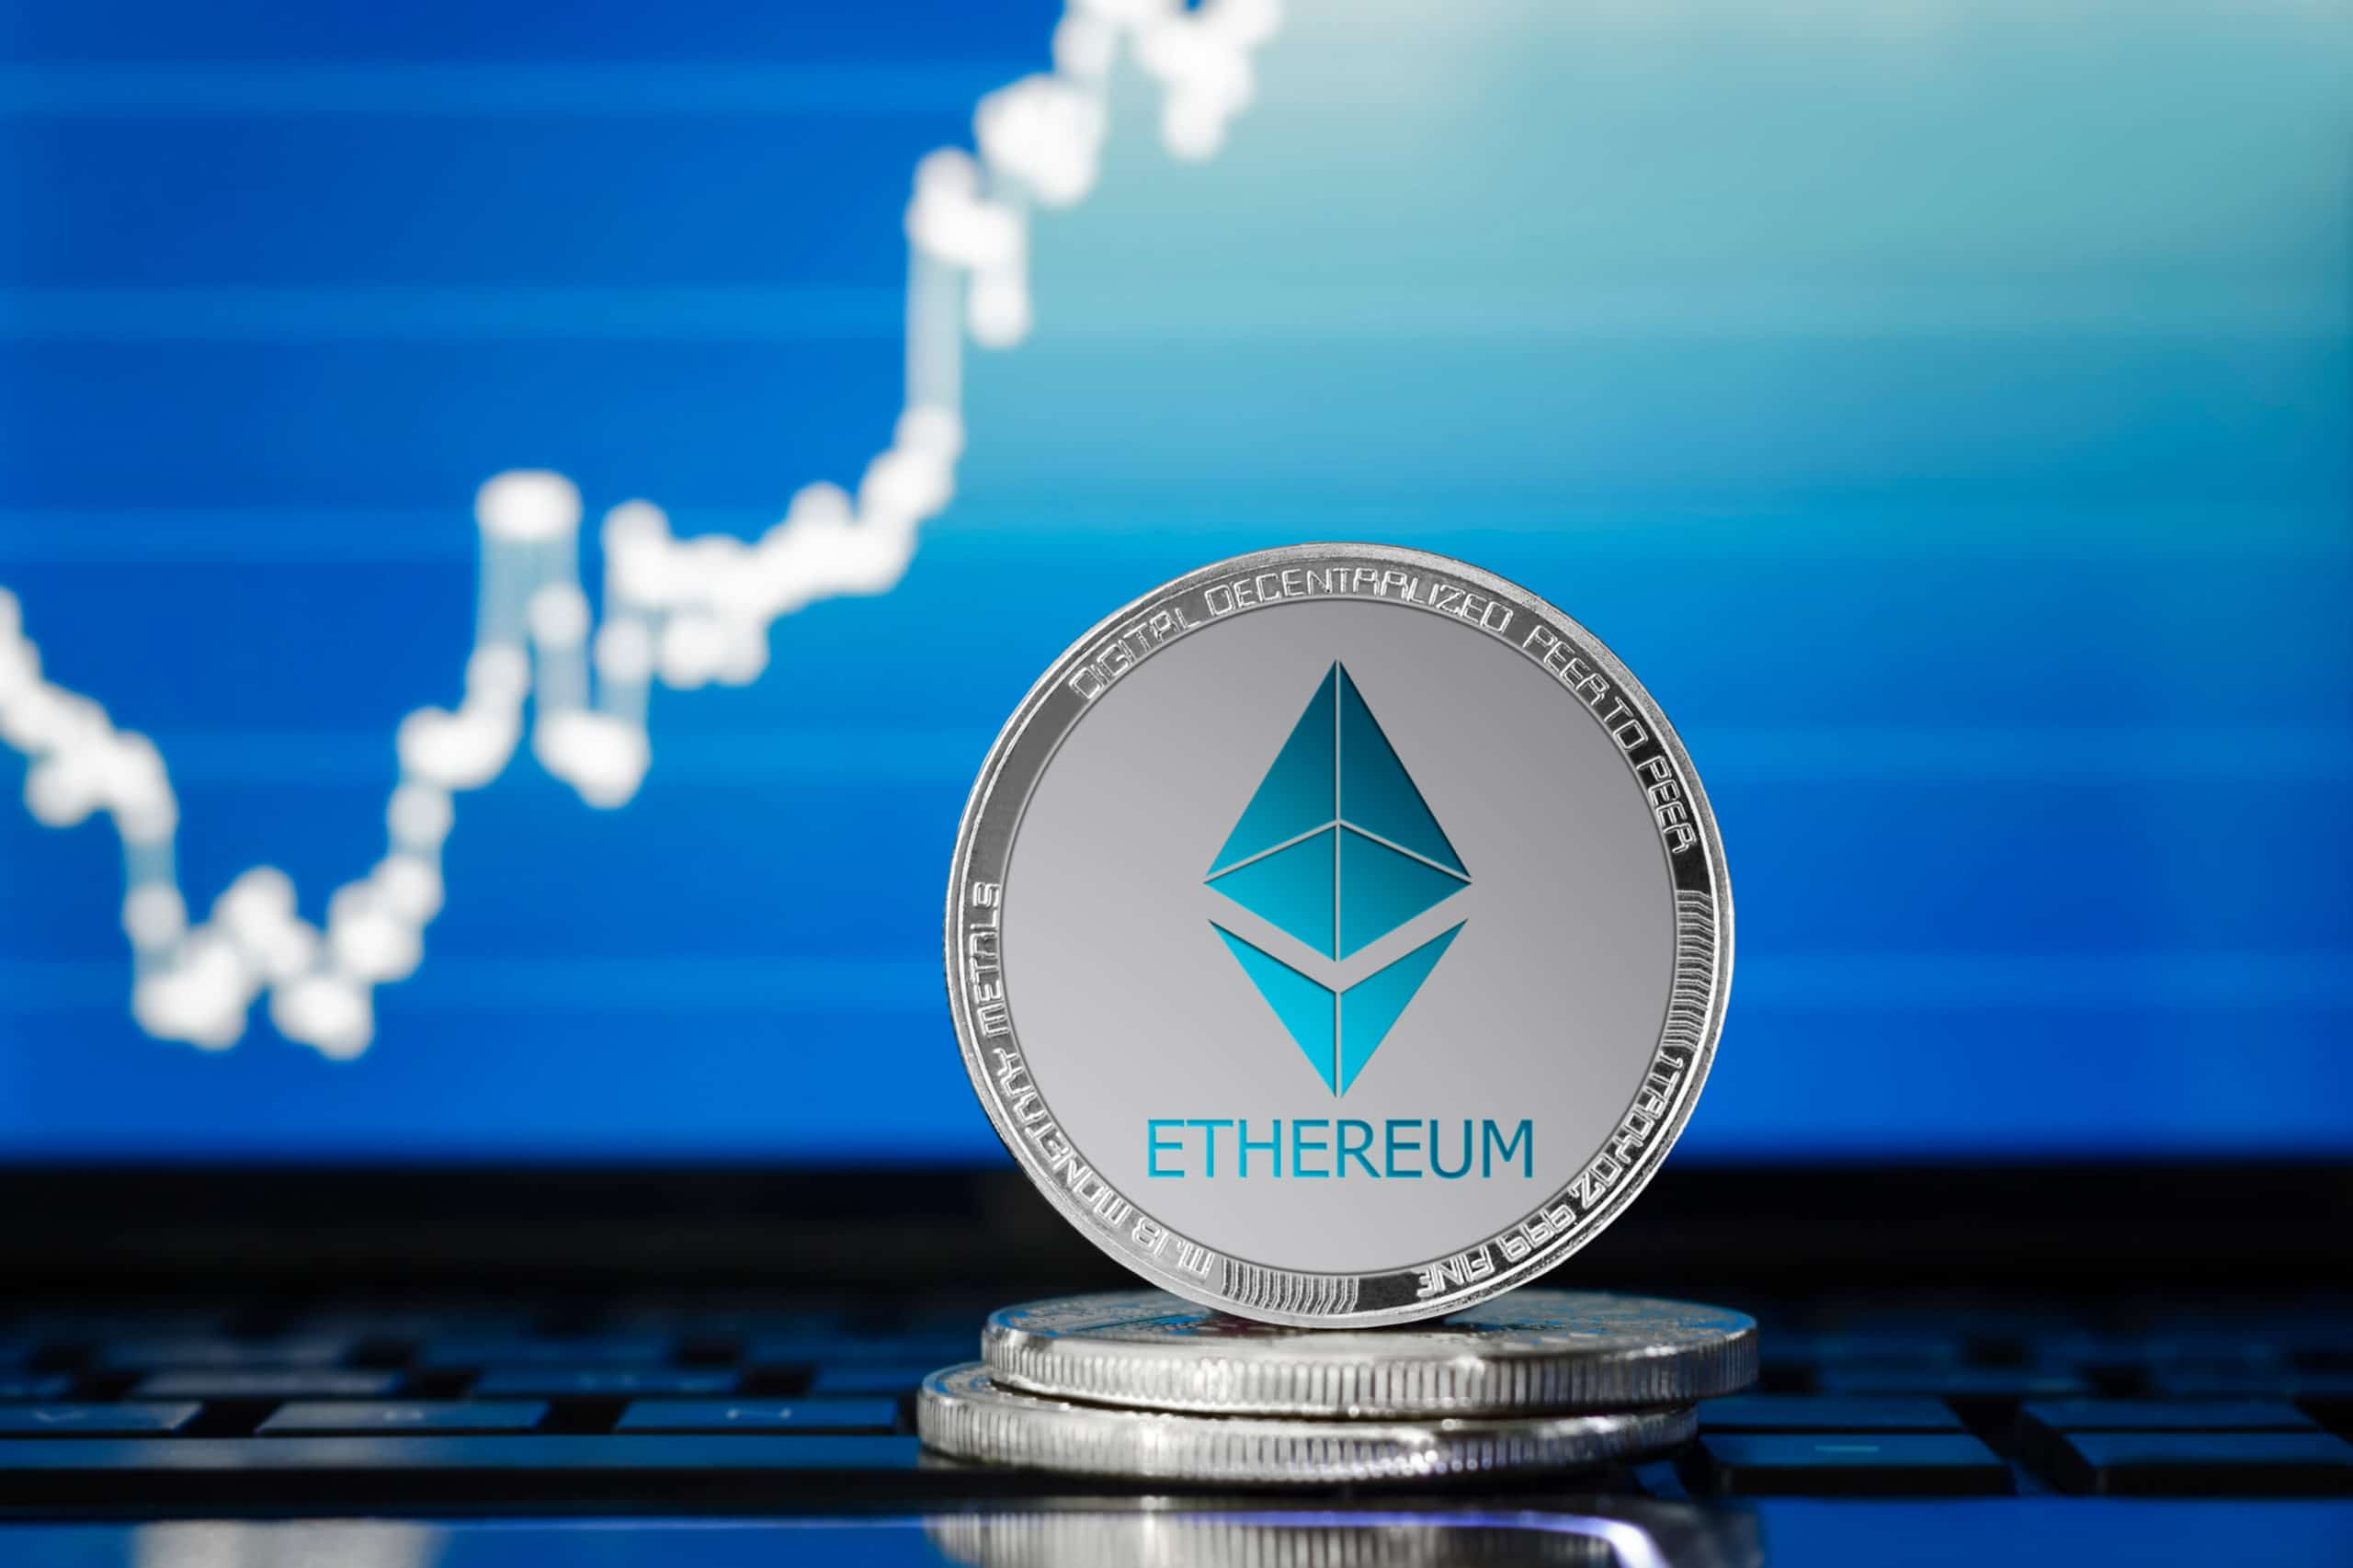 Ethereum (ETH) hits All-time hig